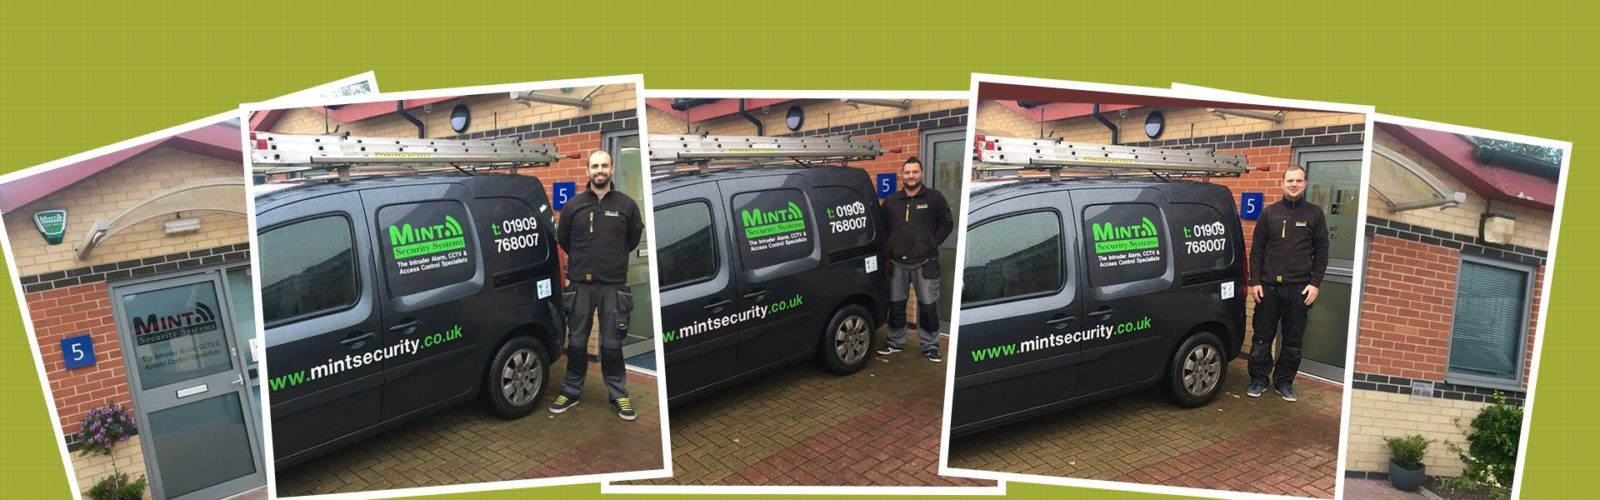 Mint Security Systems Ltd fleet